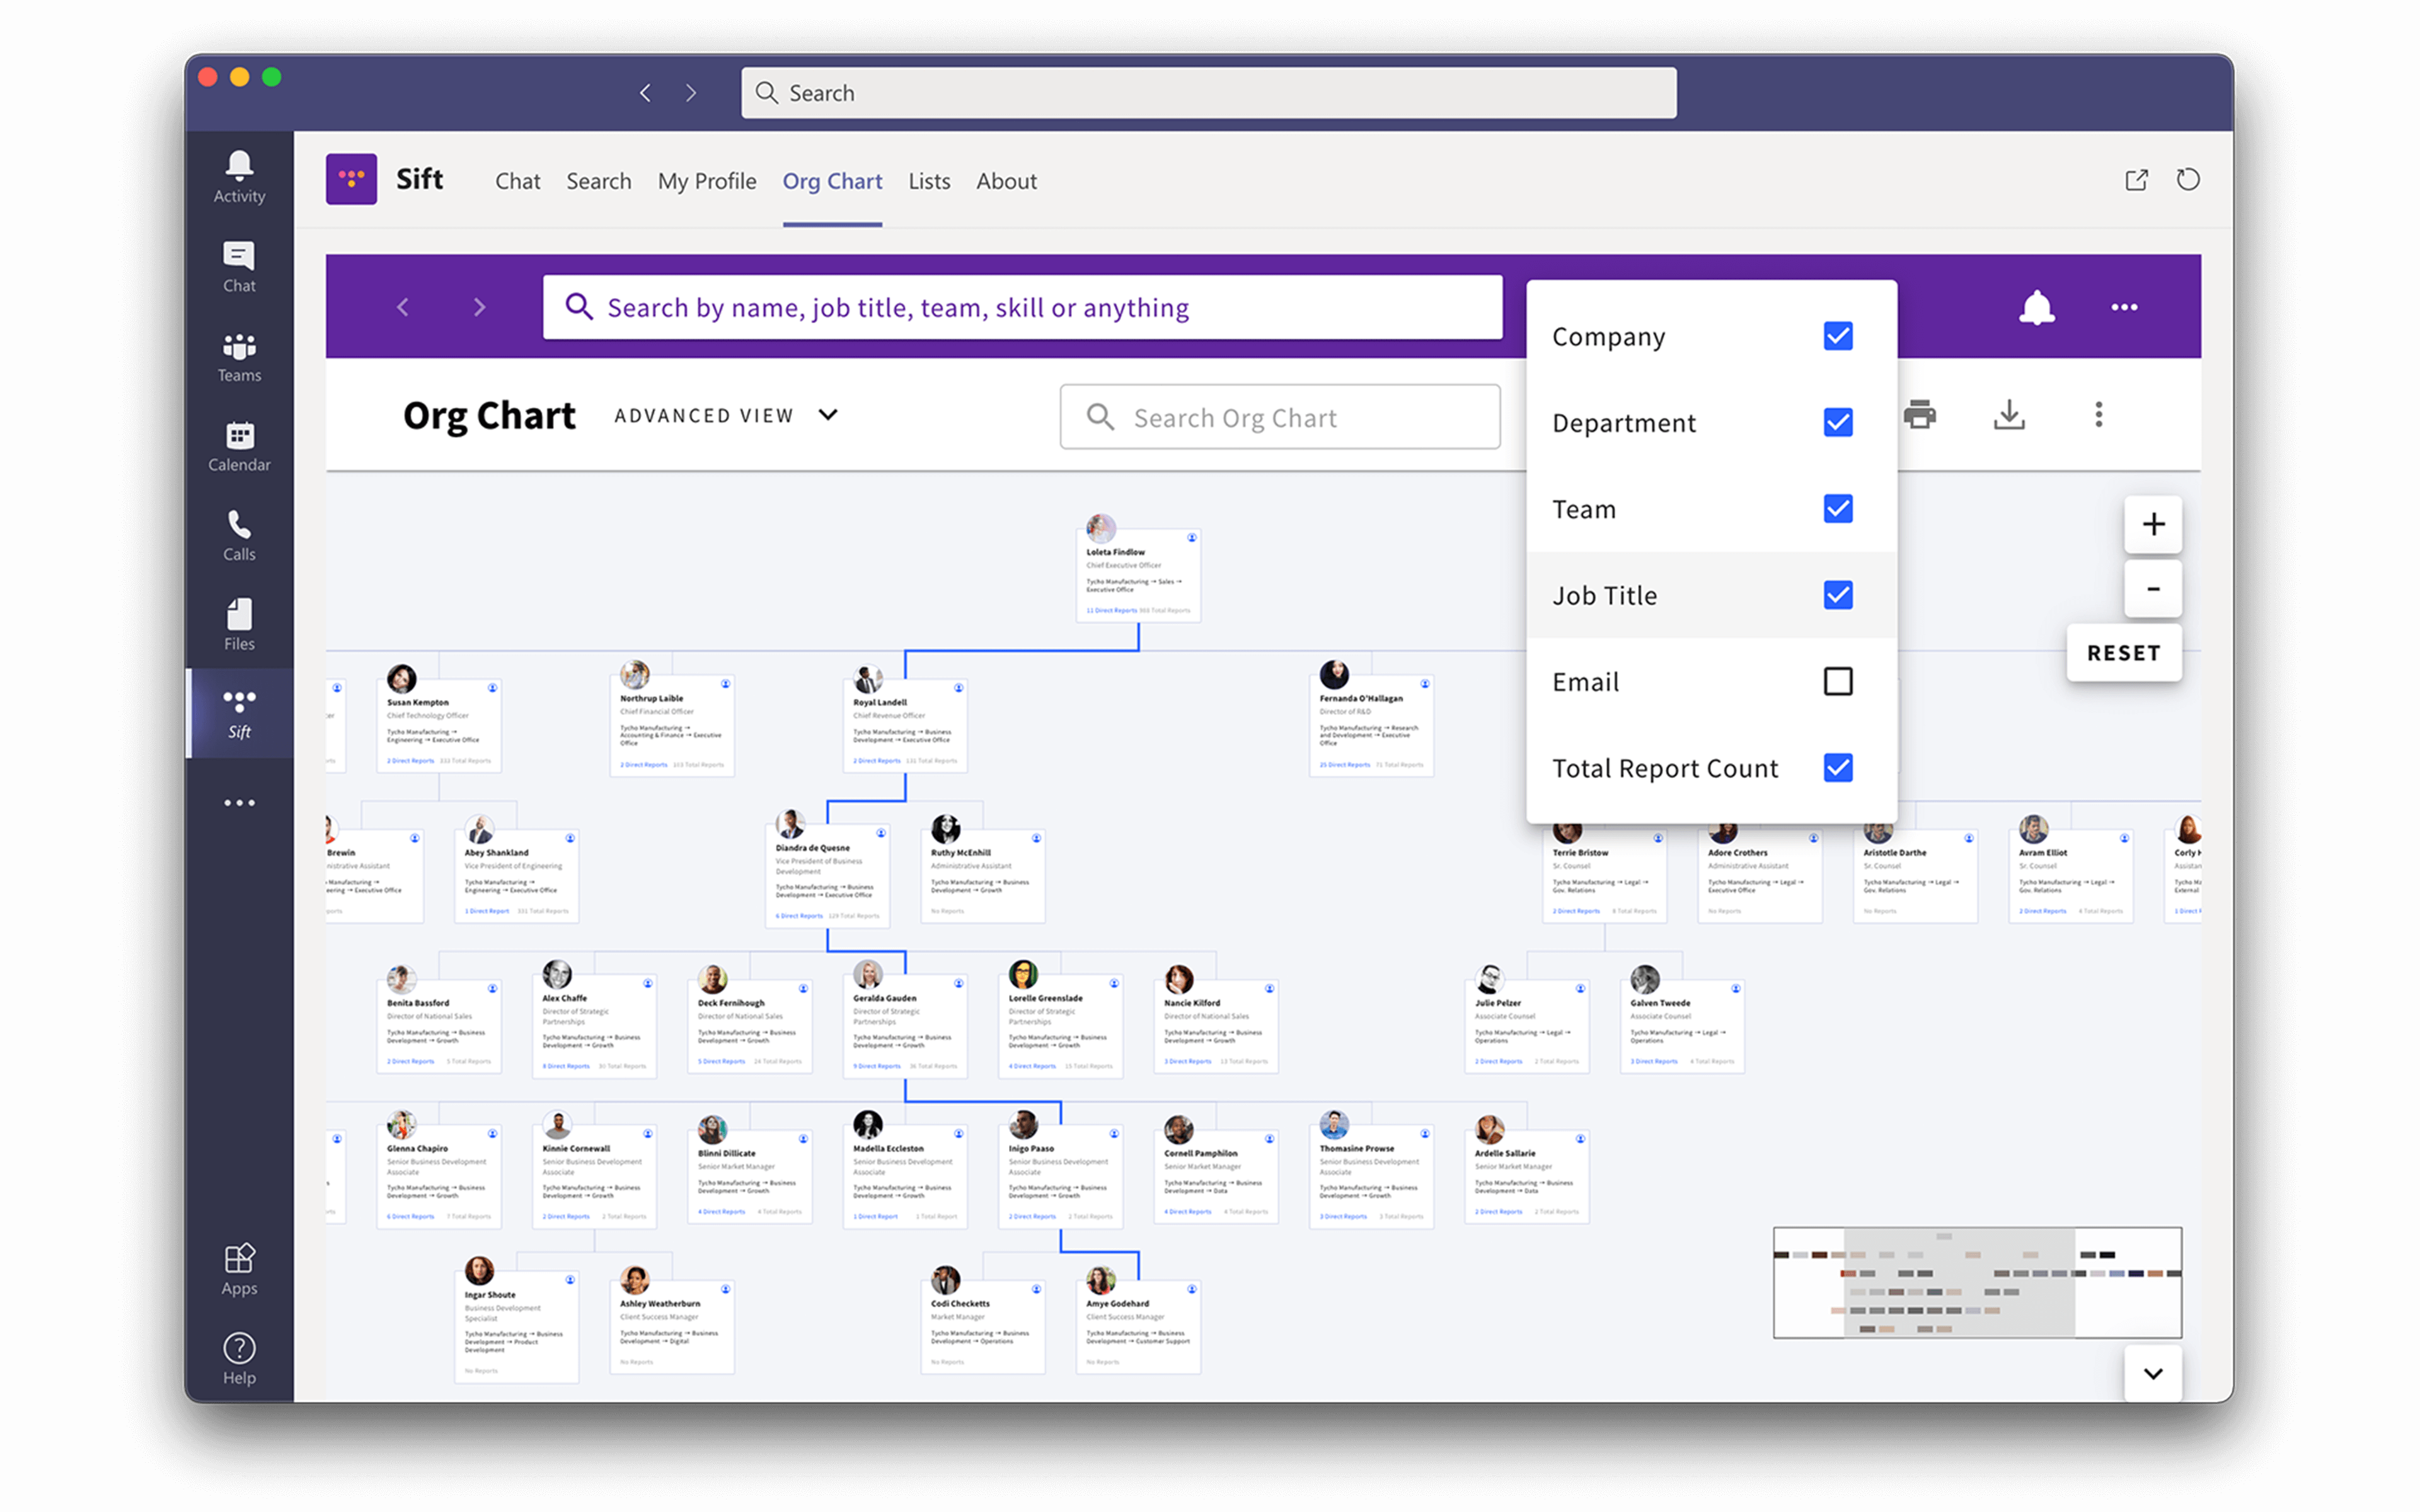 Microsoft Teams with Sift org chart view